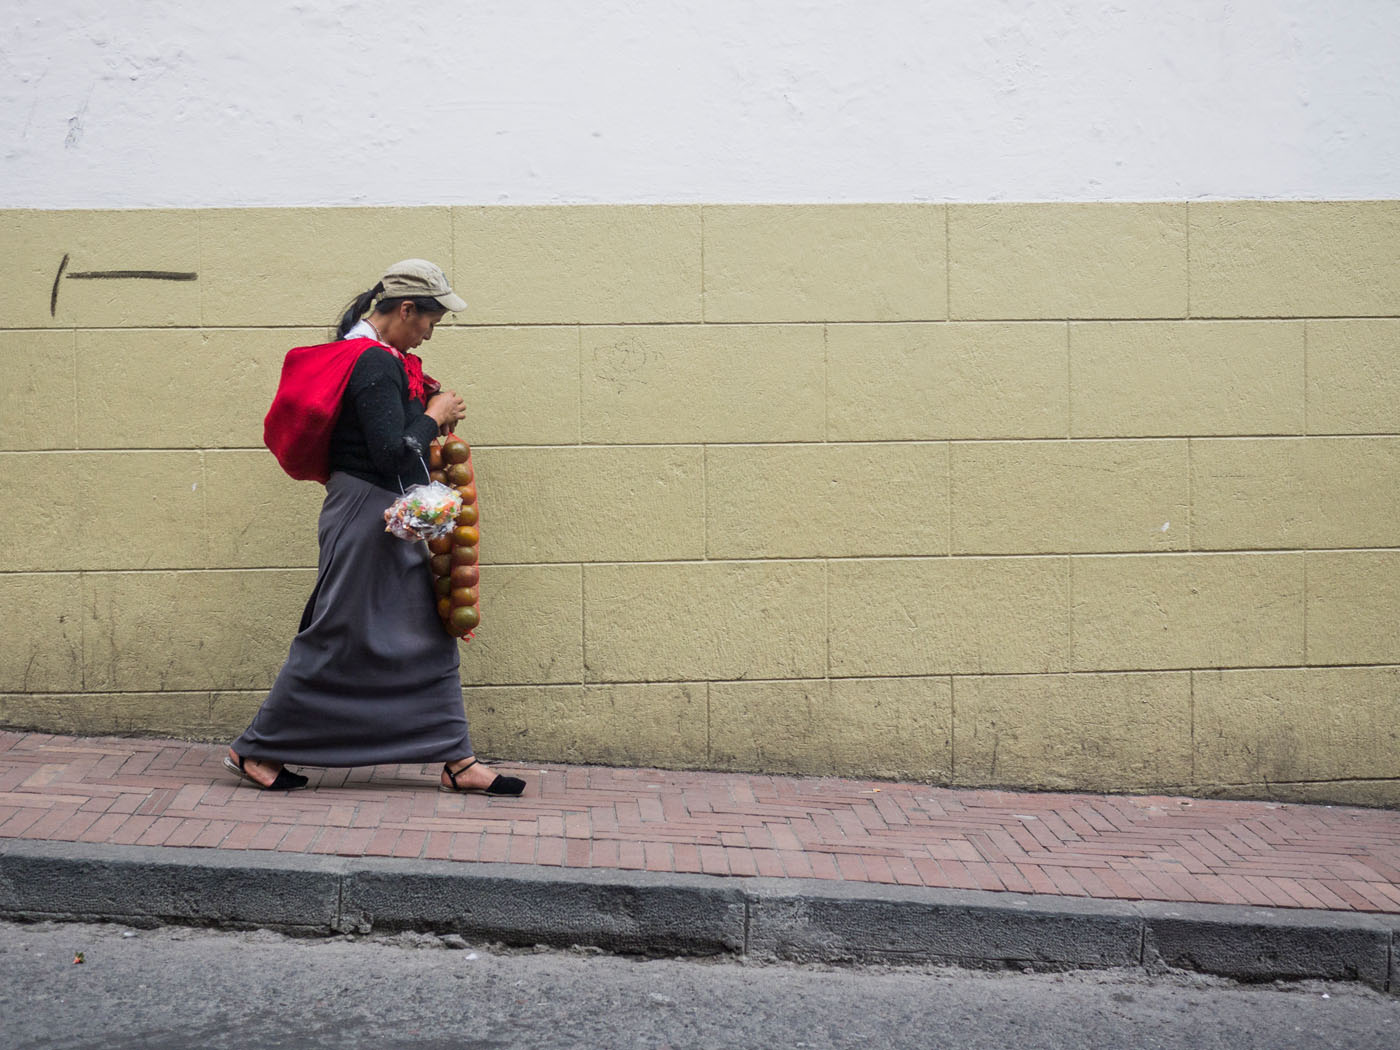 quito-ecuador-travel-streetlife-reisefotos_049